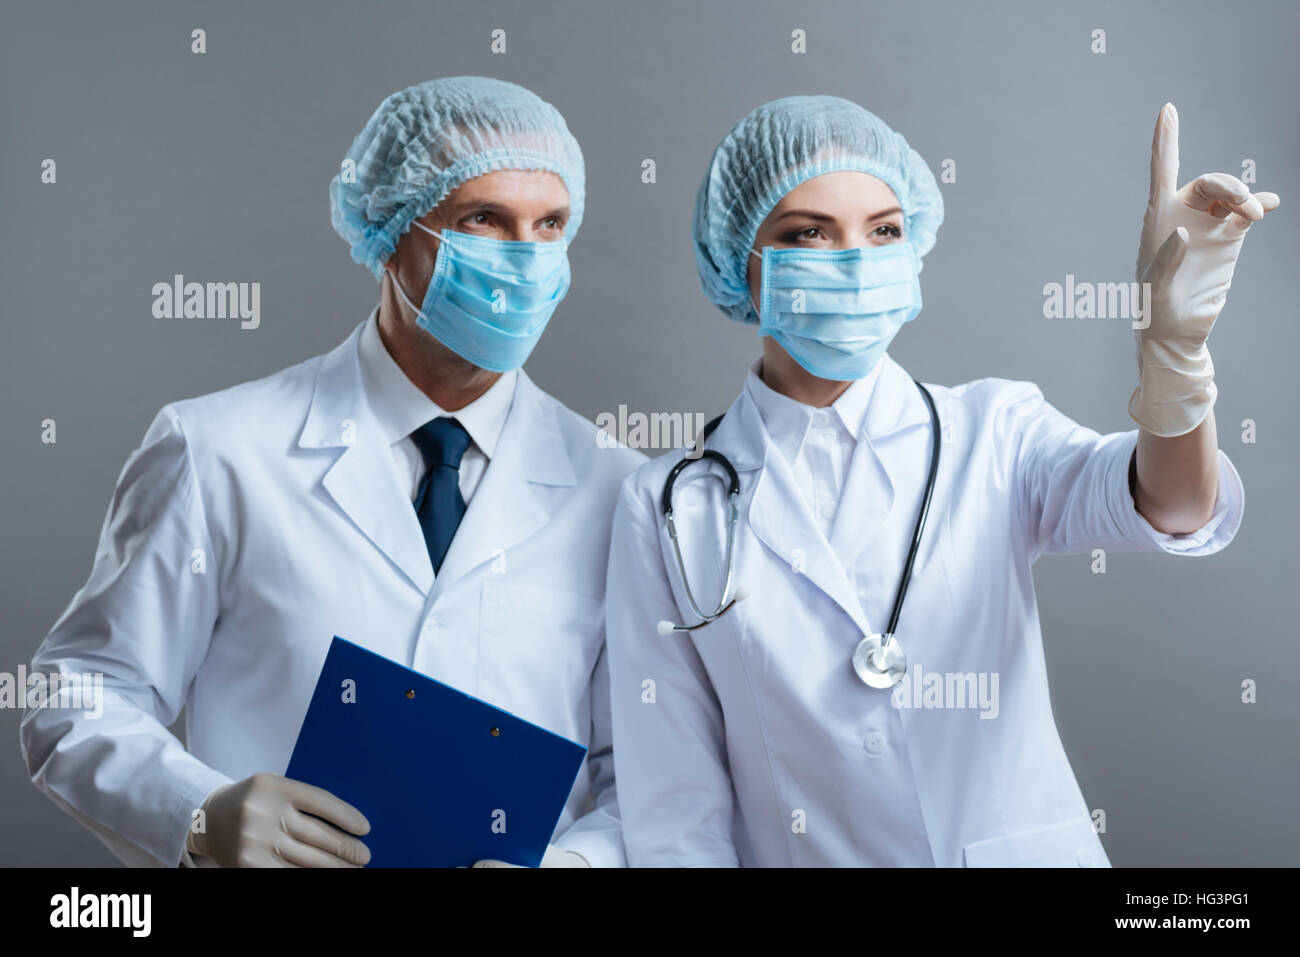 Man and woman working as doctors together - Stock Image